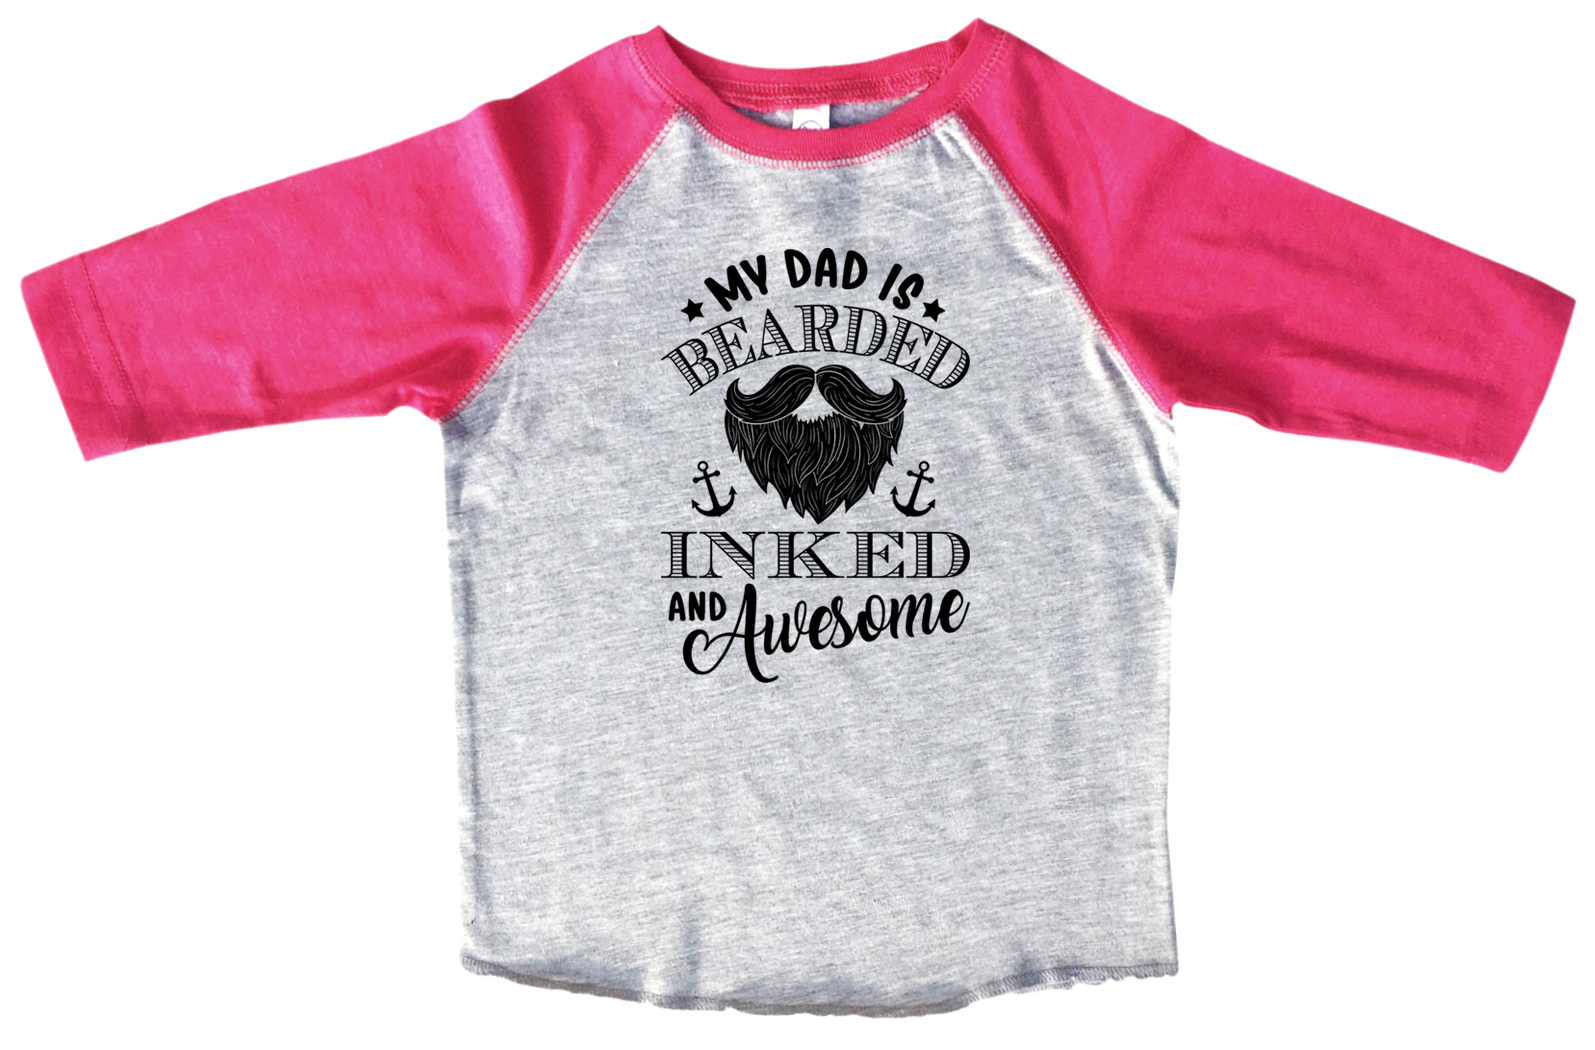 """3915716c6 Girls Or Boy Raglan """"My Dad Is Bearded Inked And Awesome"""" Dad s ..."""